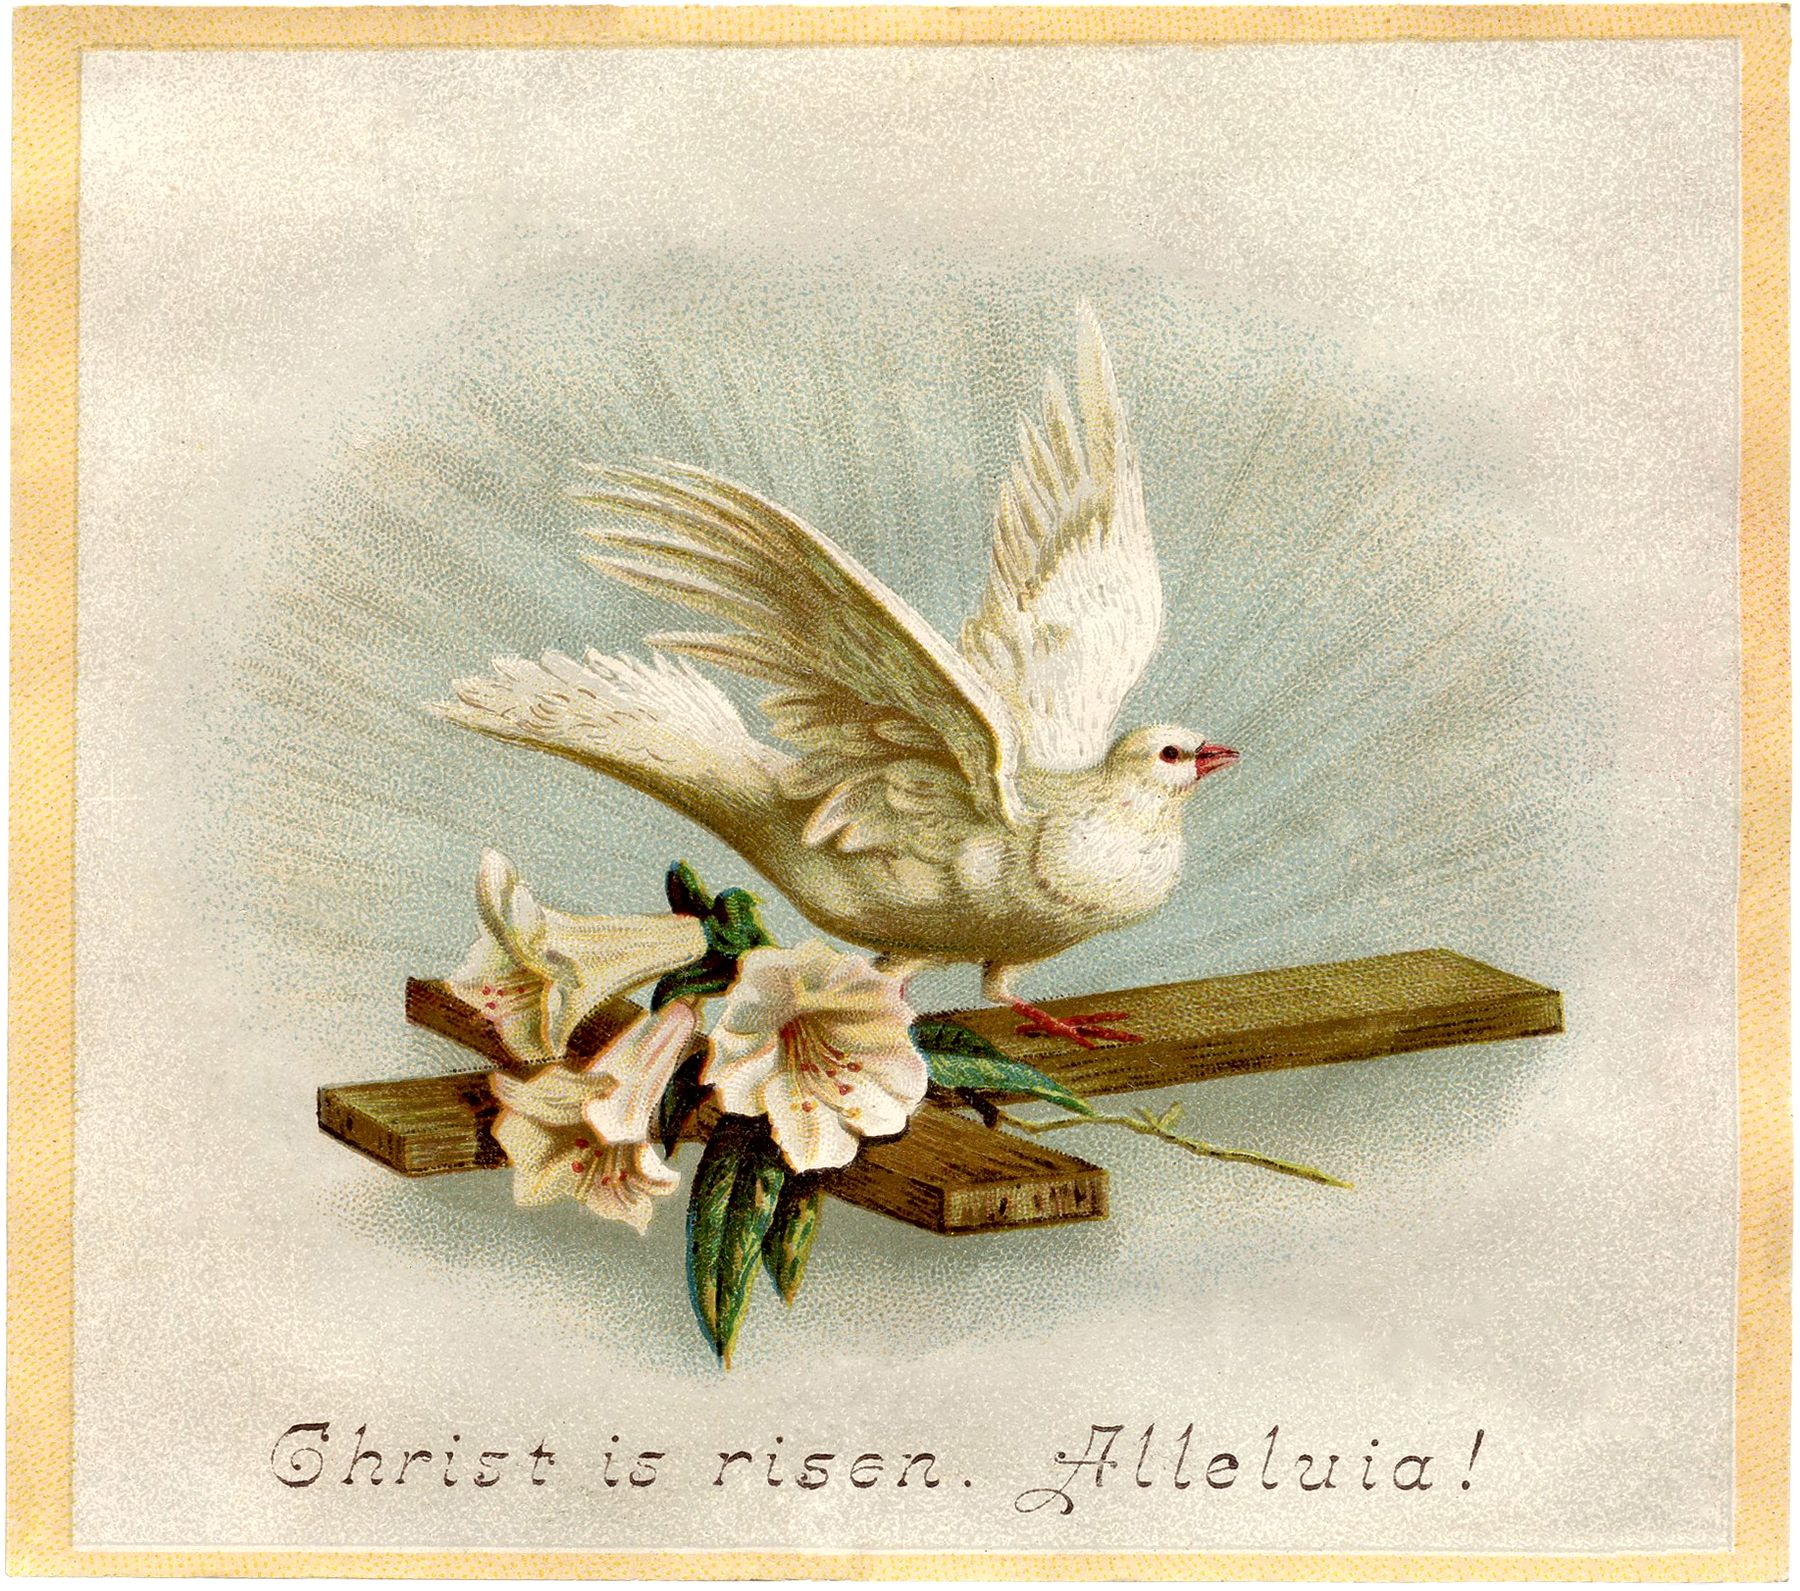 Easter-Dove-Image-Download-GraphicsFairy.jpg (1800×1591)